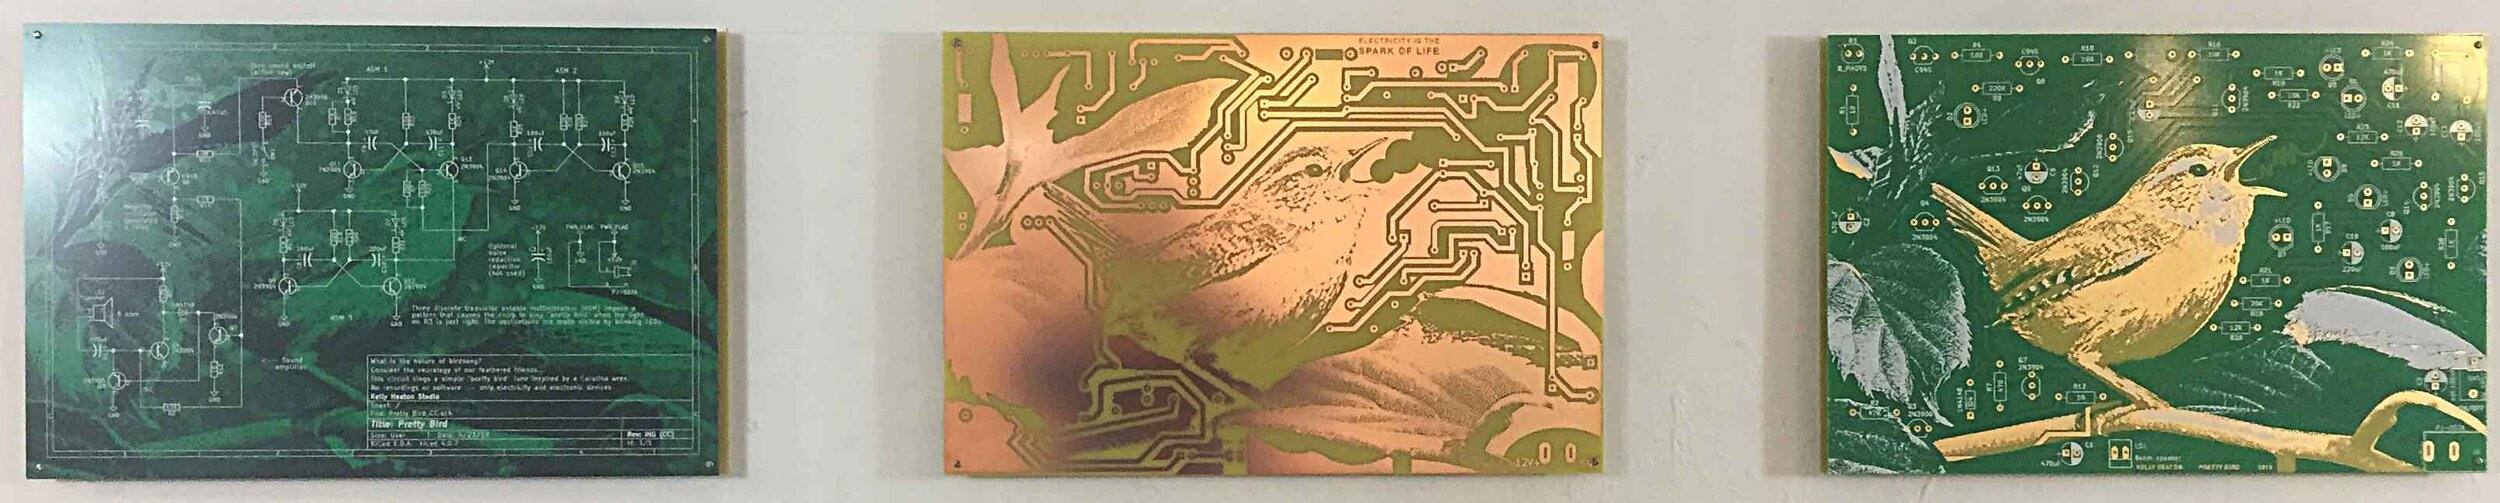 "The Making of a Pretty Bird, 2019. A series of 3 printed circuit boards each measuring 12"" x 18"". Etched copper, gold electroplate, and silkscreen on epoxy laminate."